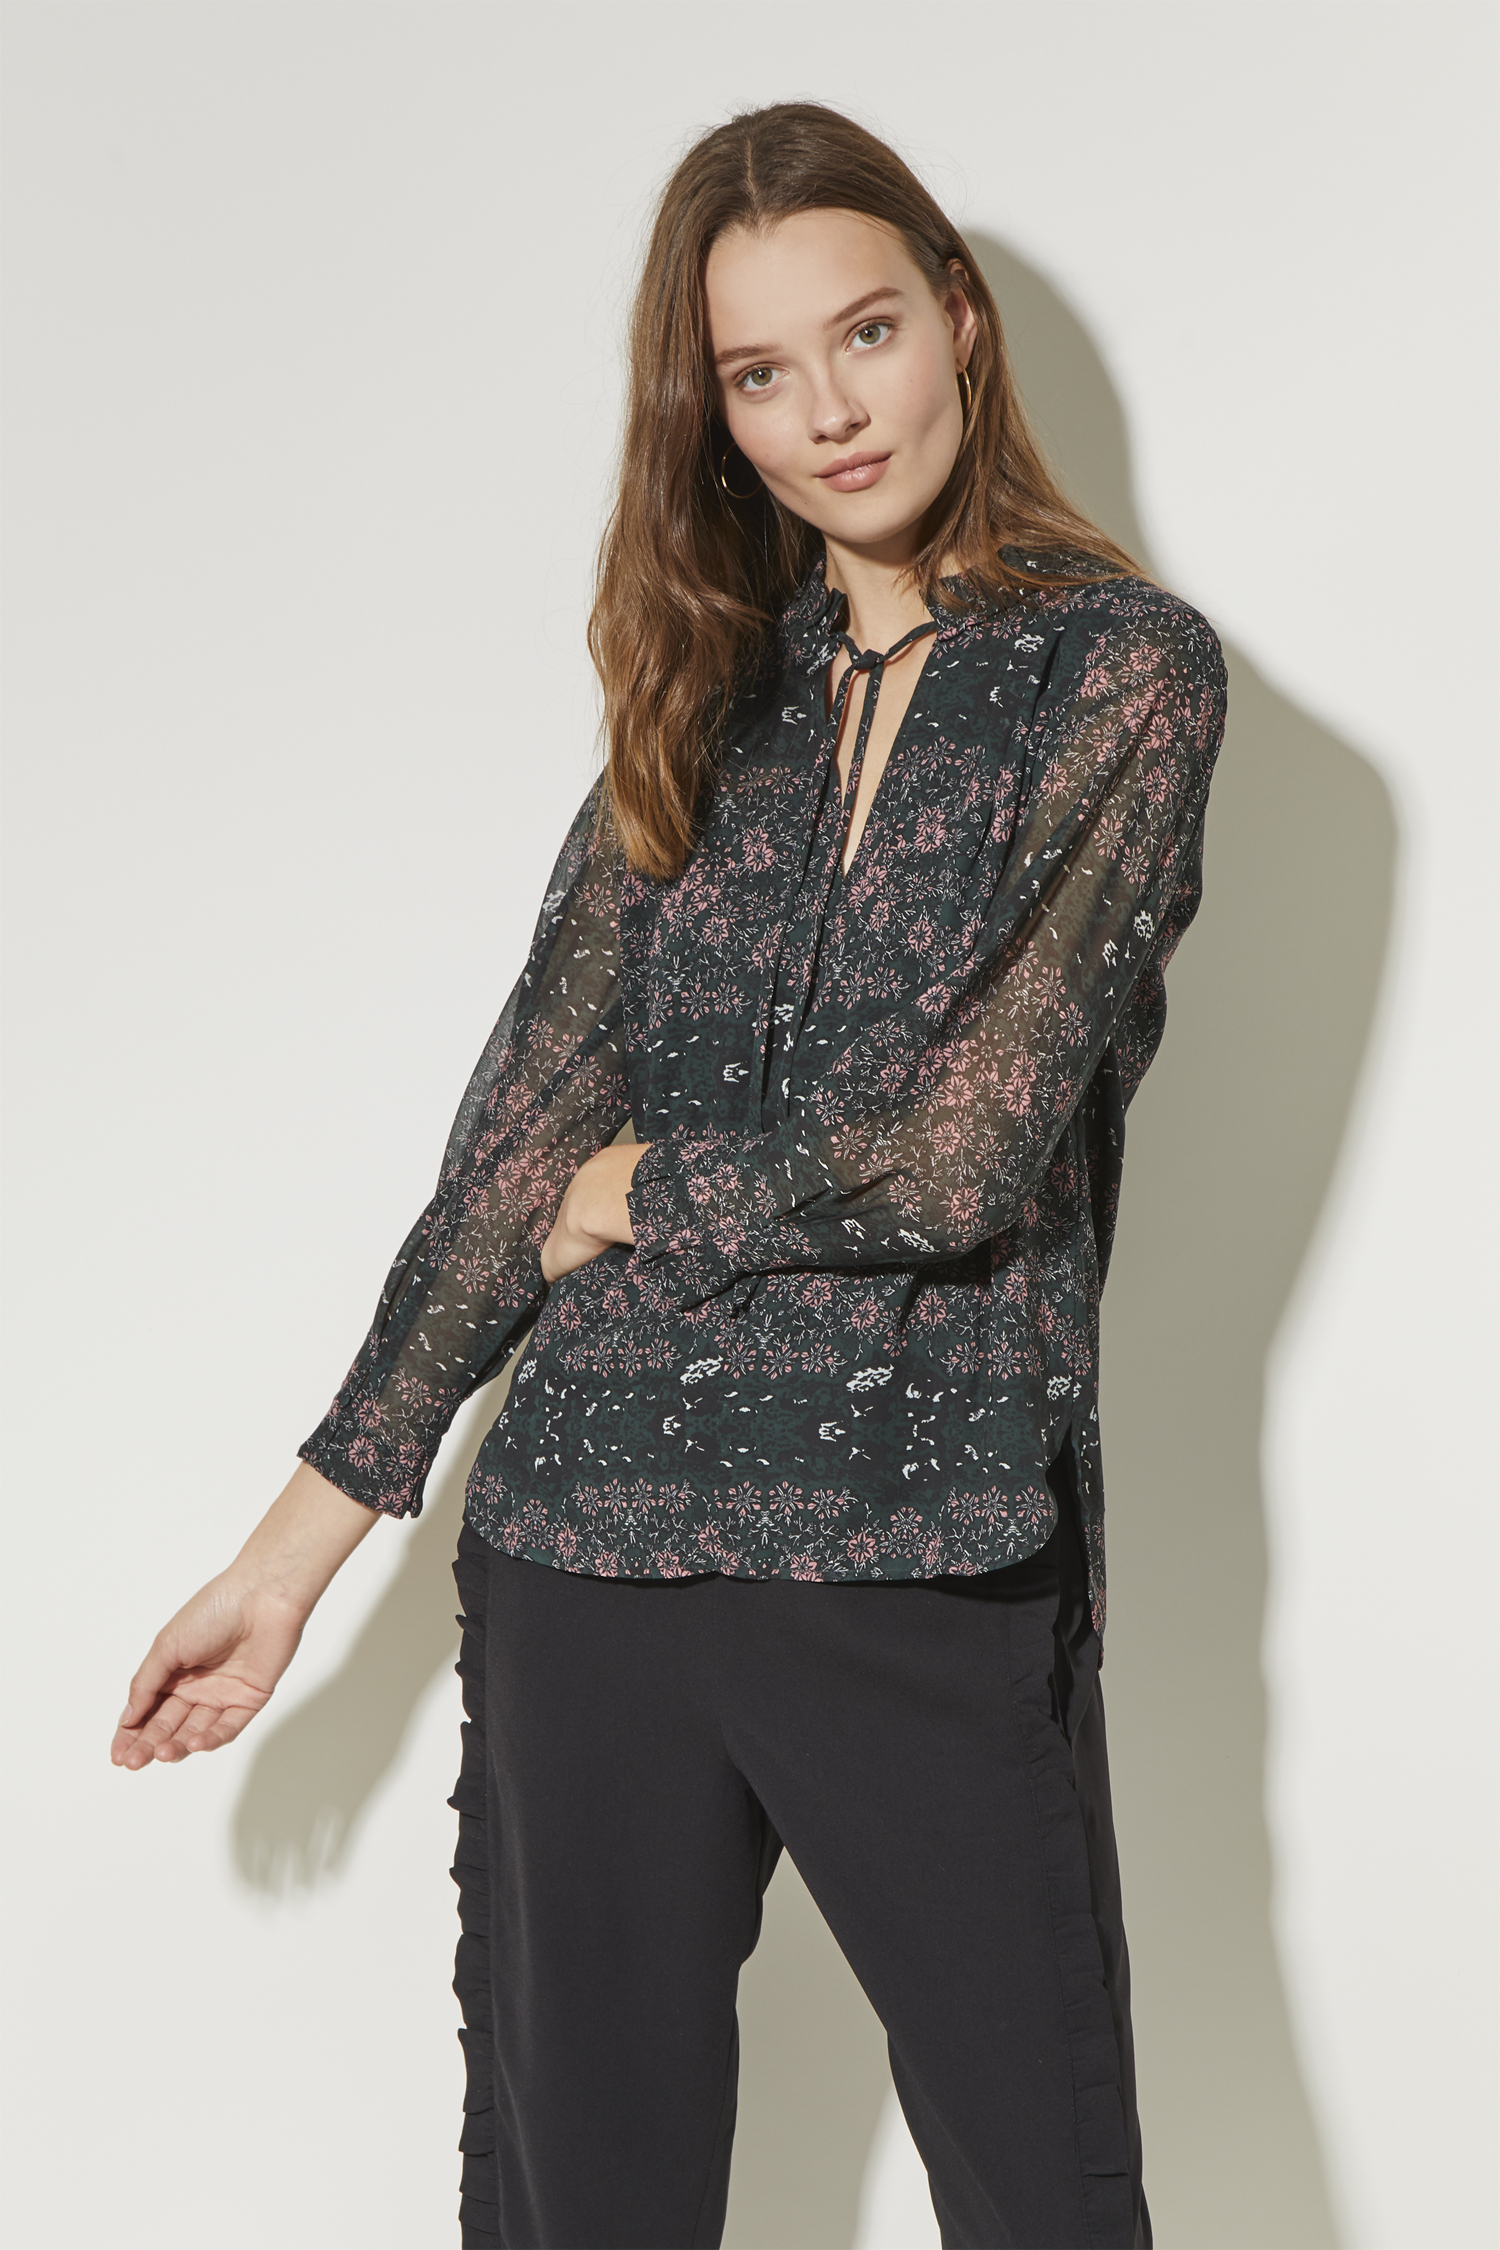 2a481b31262 j2kbn-womens-cl-wintergreenmulti-speckled-flower-round-neck-top.jpg